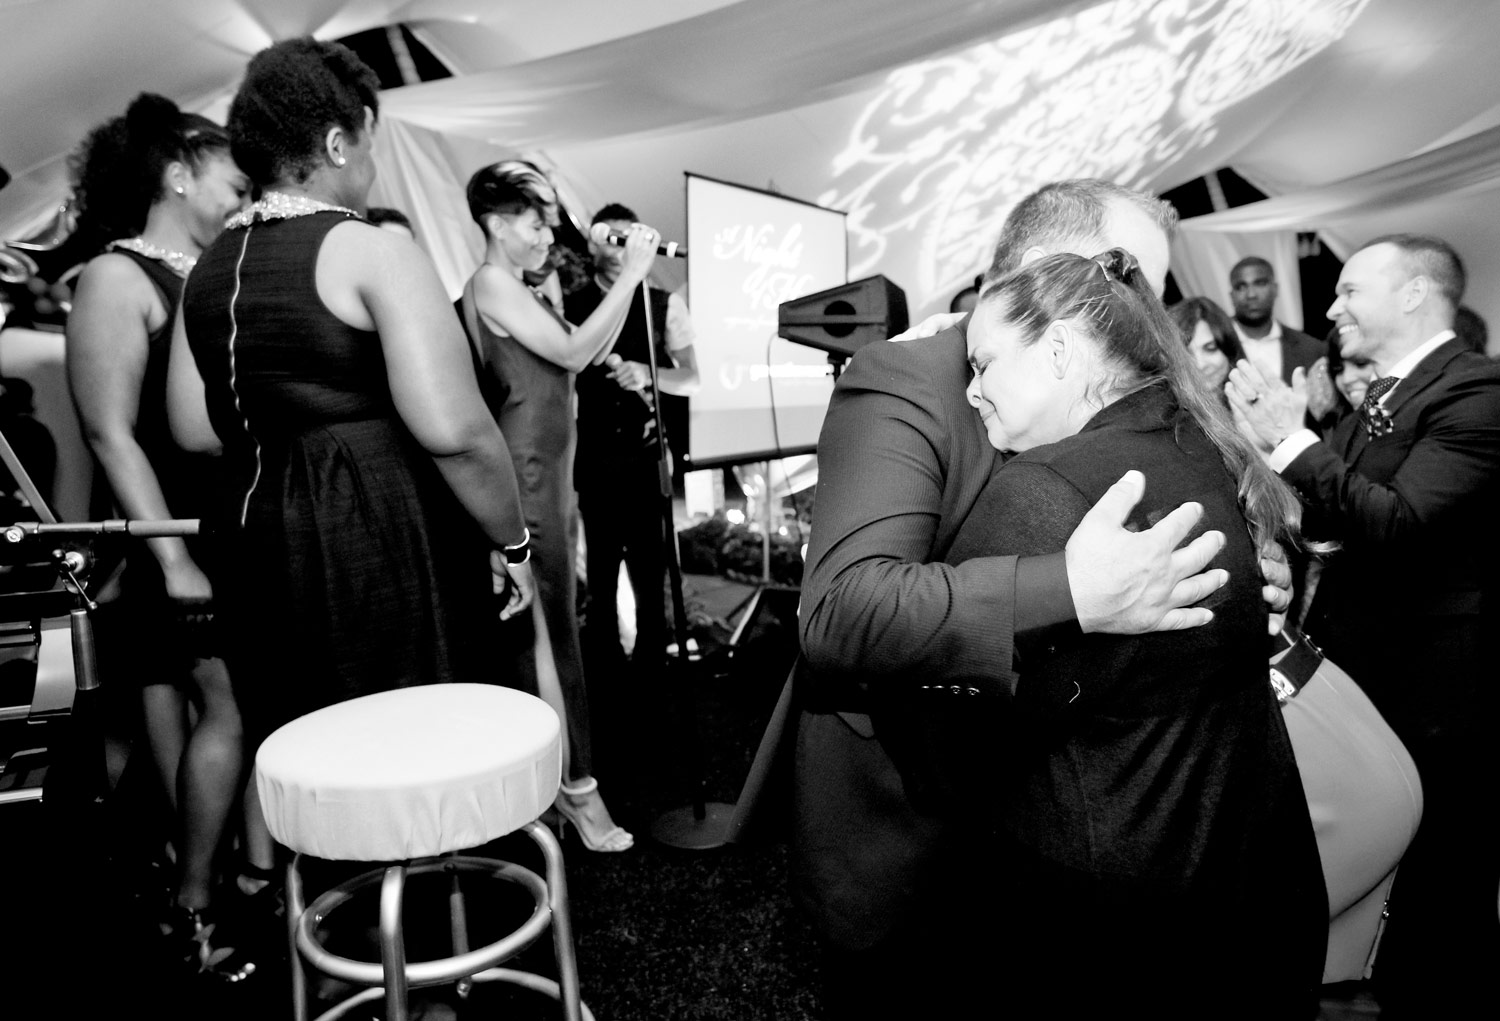 event-photographer-madison-wi-autism-ruthie-hauge-generation-rescue-night-of-hope-oscar-swan-jenny-mccarthy-donnie-wahlberg-43.jpg